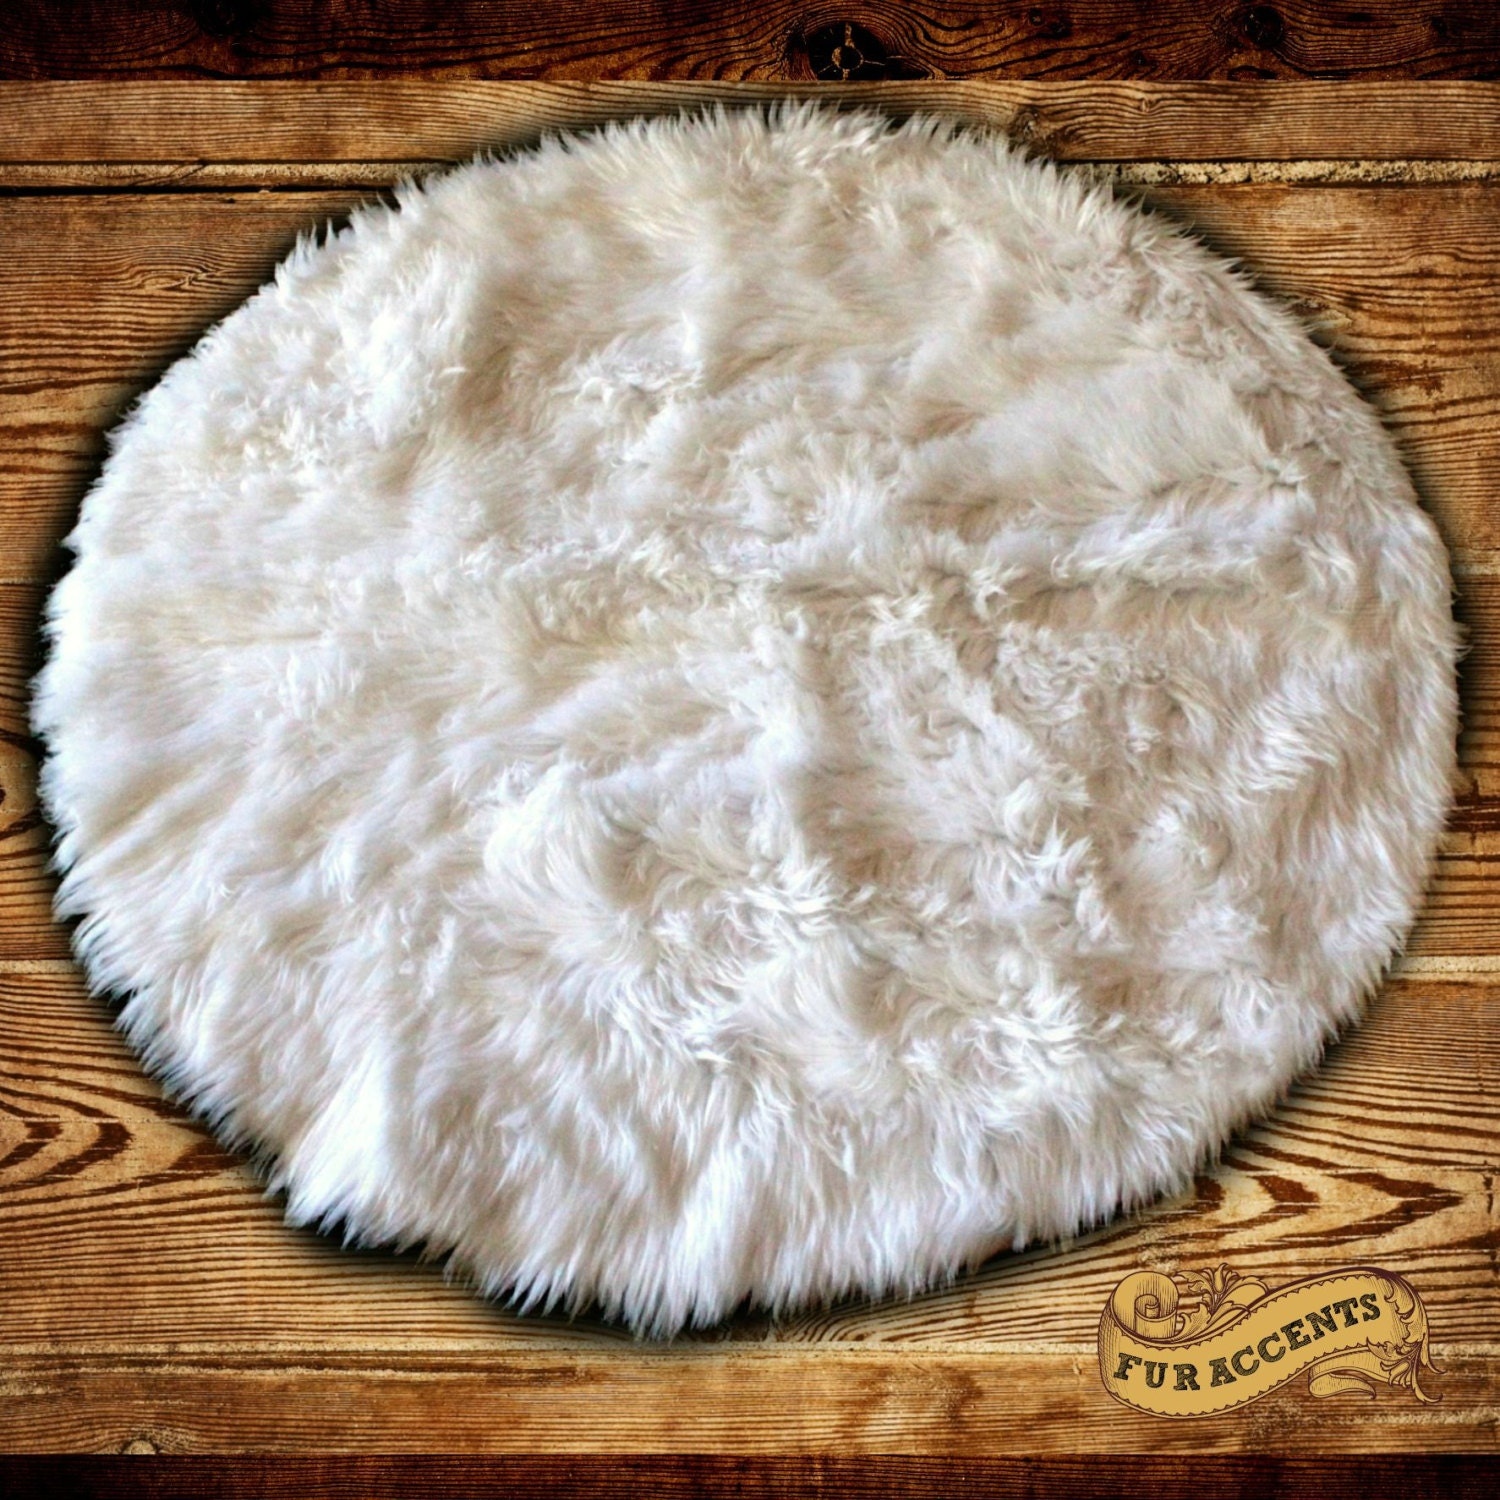 Shag Round Sheepskin Faux Fur Area Rug / Thick White By